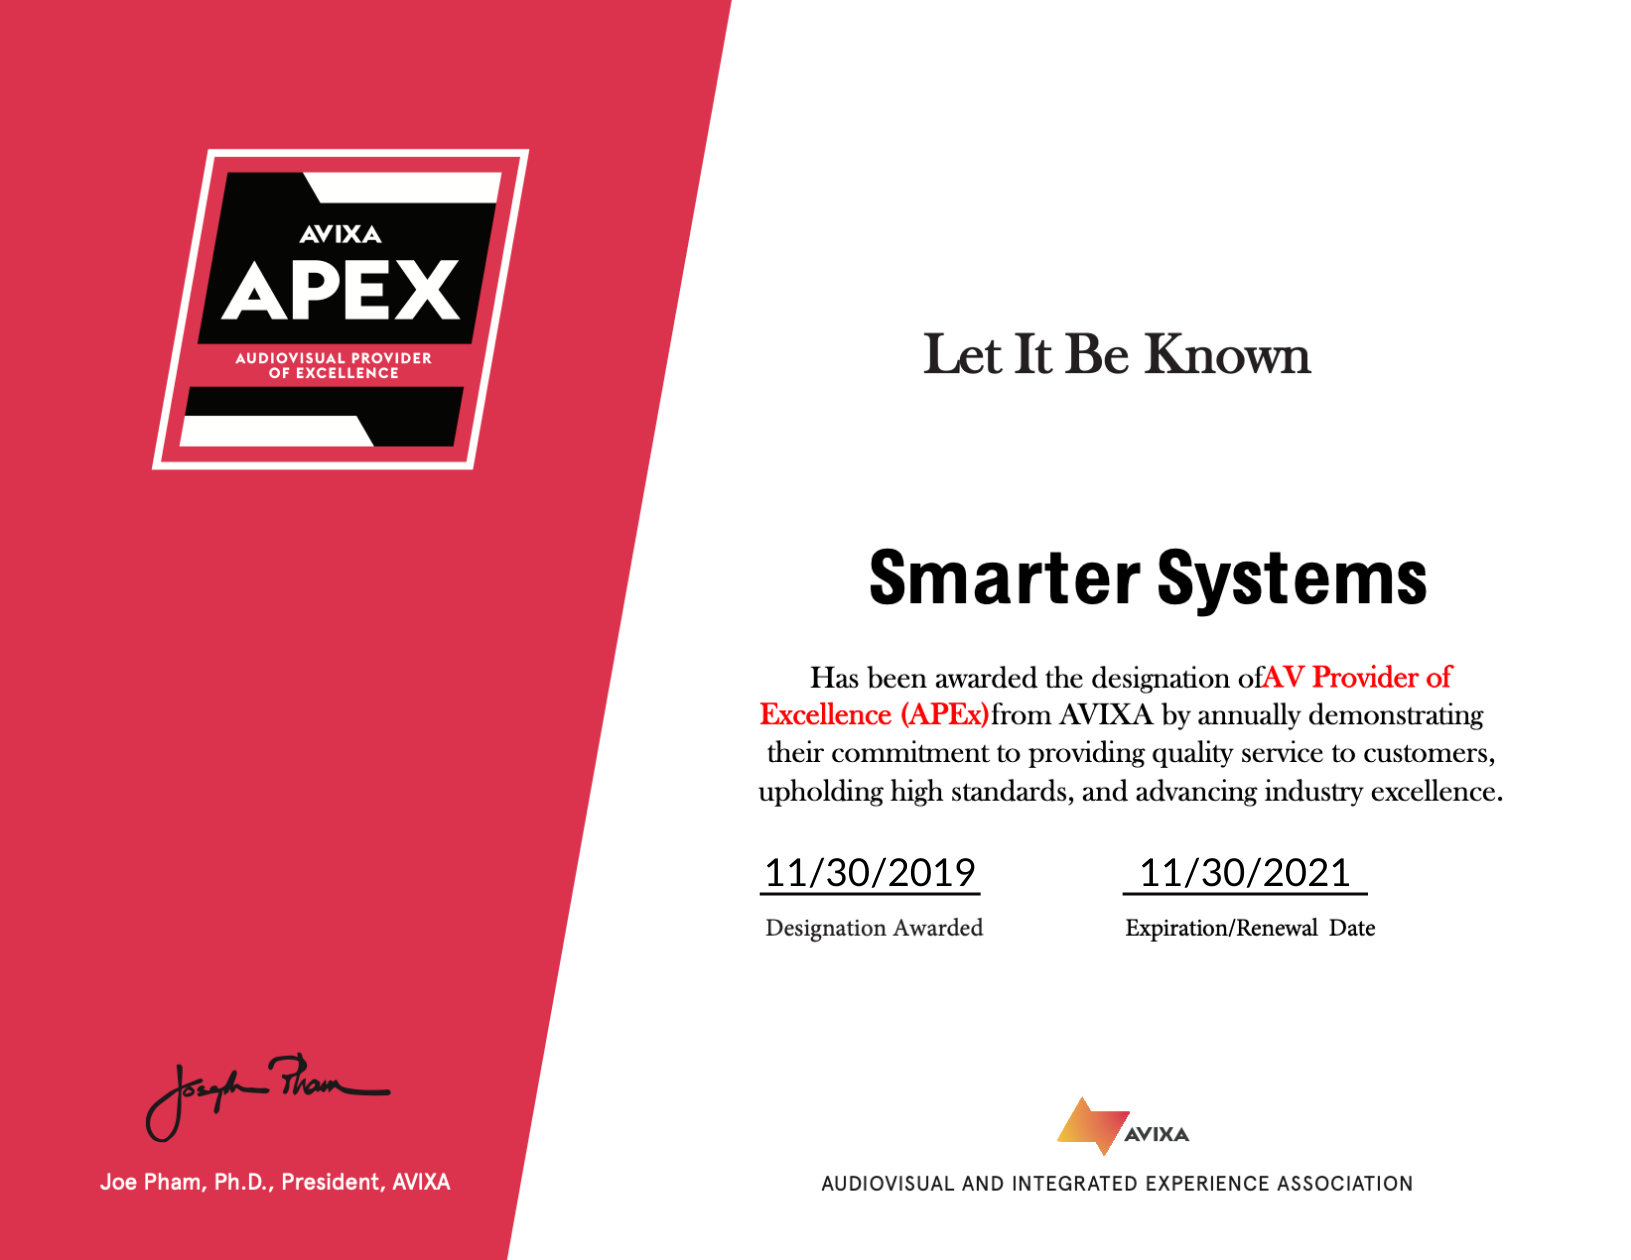 APEx Award - Smarter Systems